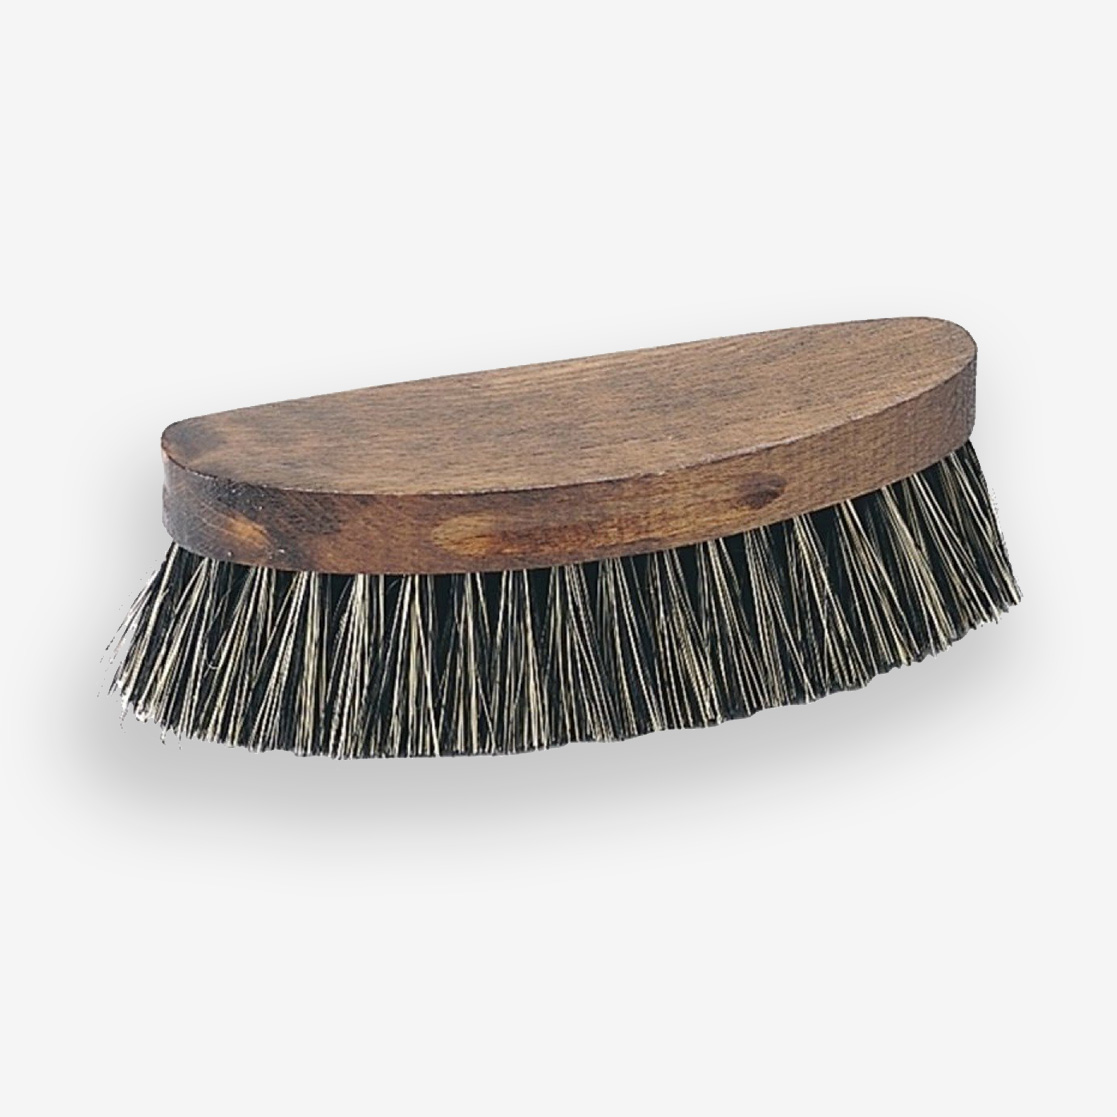 Furniture Polishing Brushes